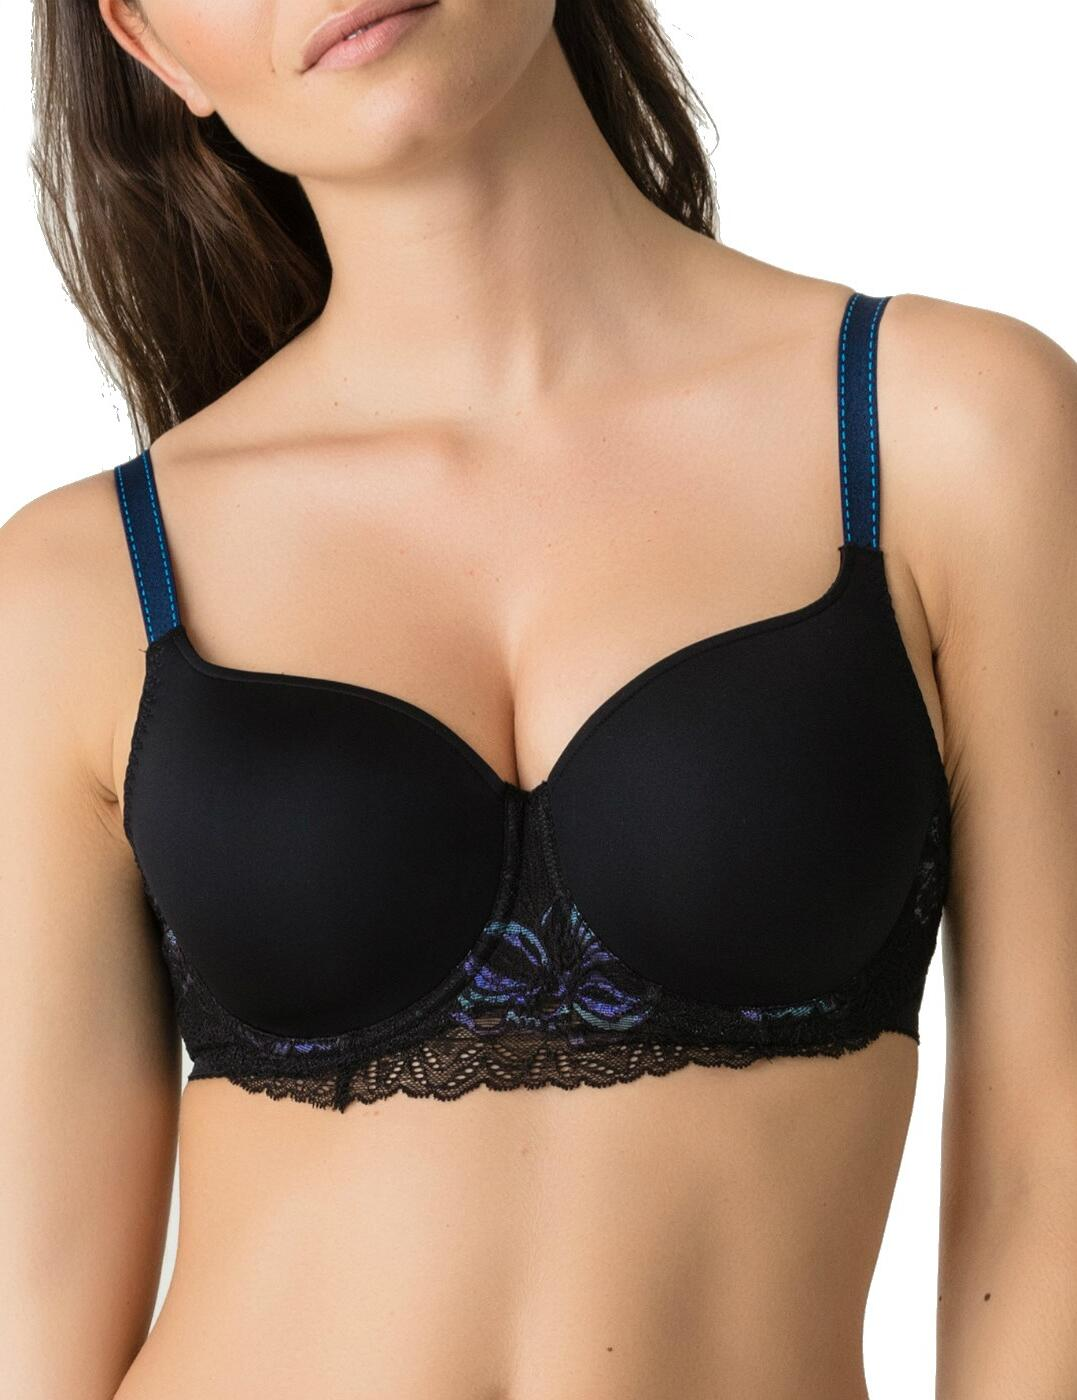 0241670/0241671 Prima Donna Twist French Kiss Bra - 0241670/0241671 Black